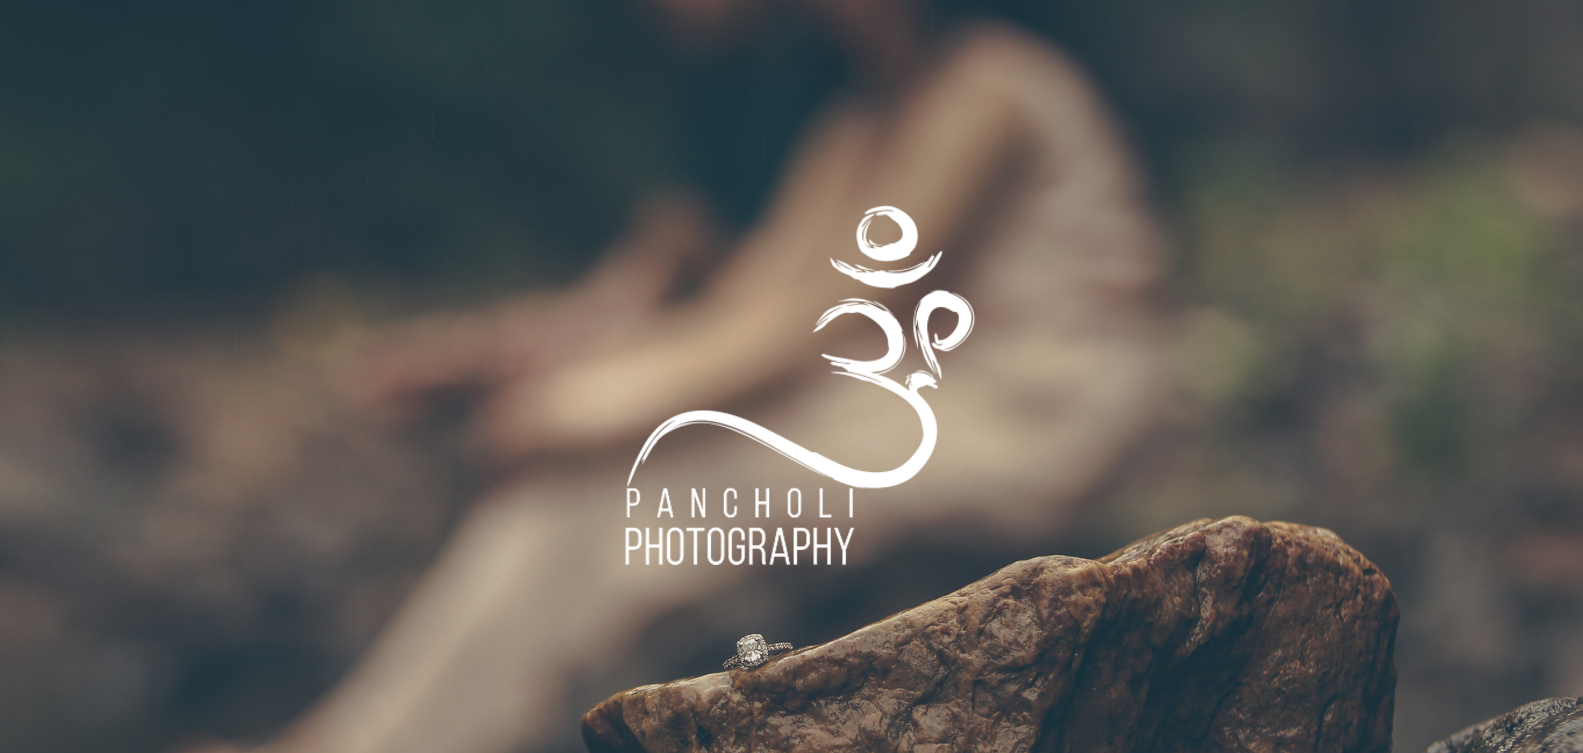 Om Pancholi Photography